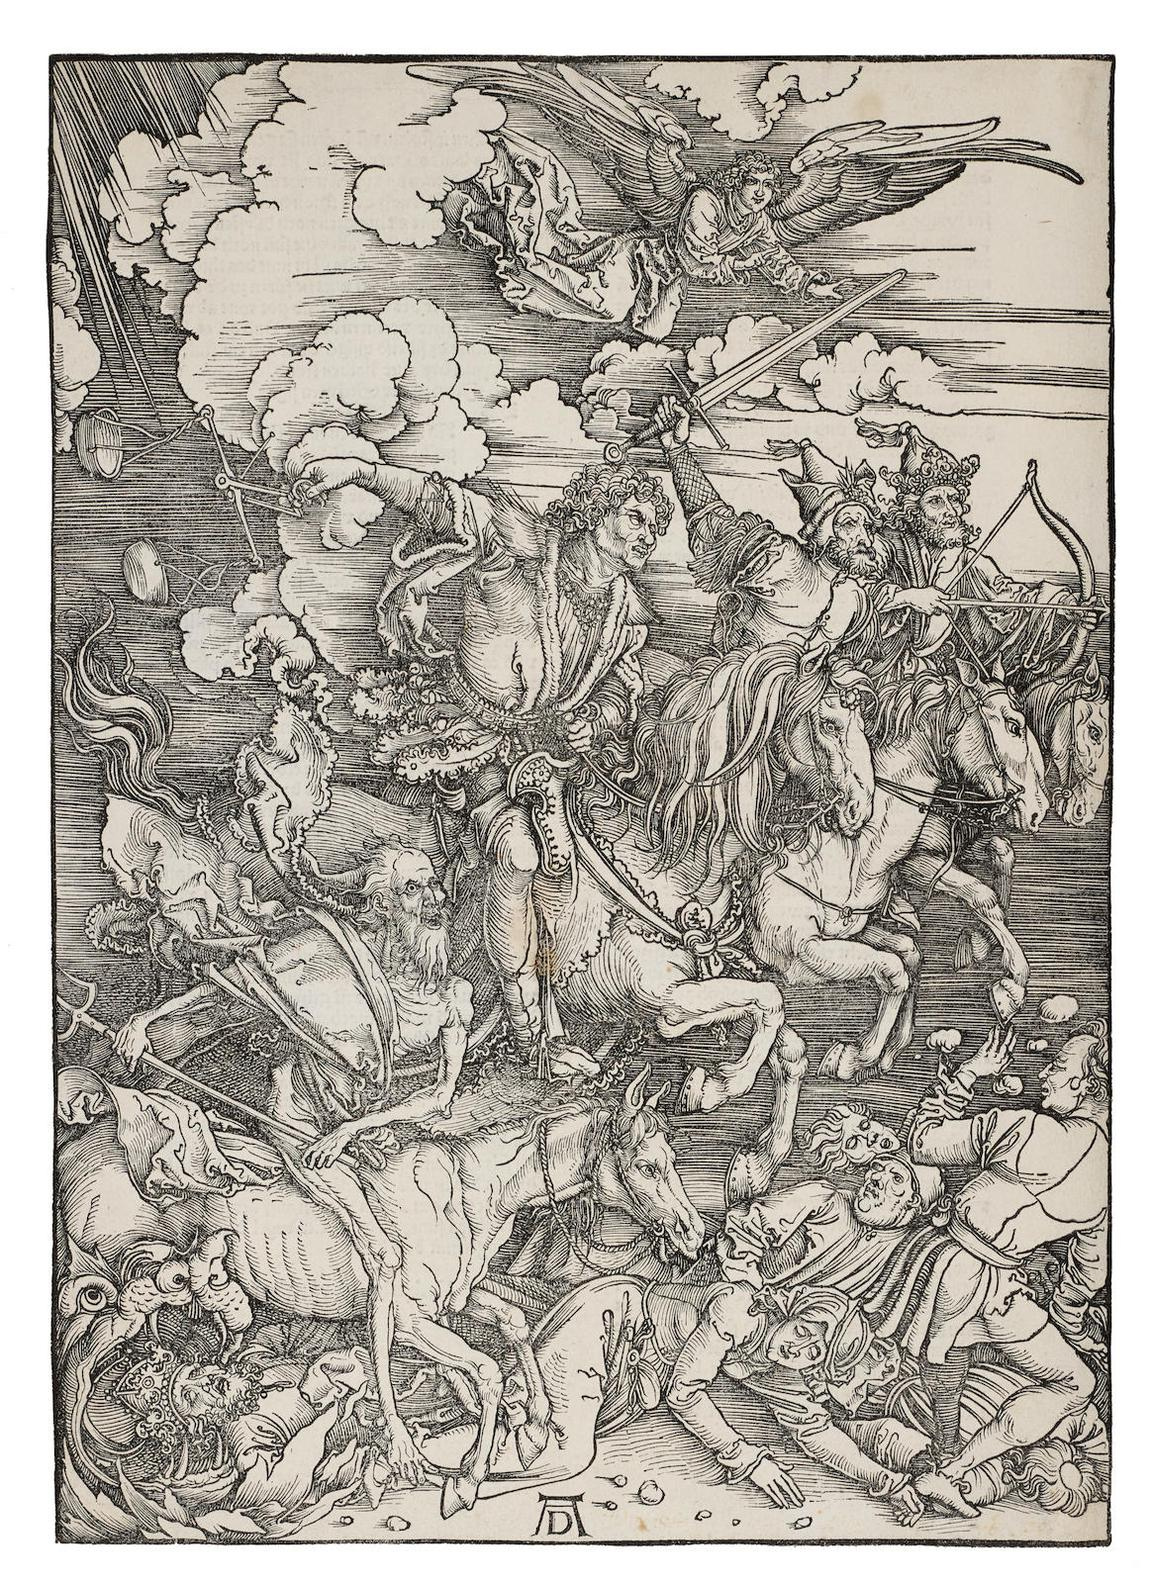 Albrecht Durer-The Four Horsemen Of The Apocalypse, From The Apocalypse (B. 64; M., Holl. 167; S.M.S. 115), 1497/98-